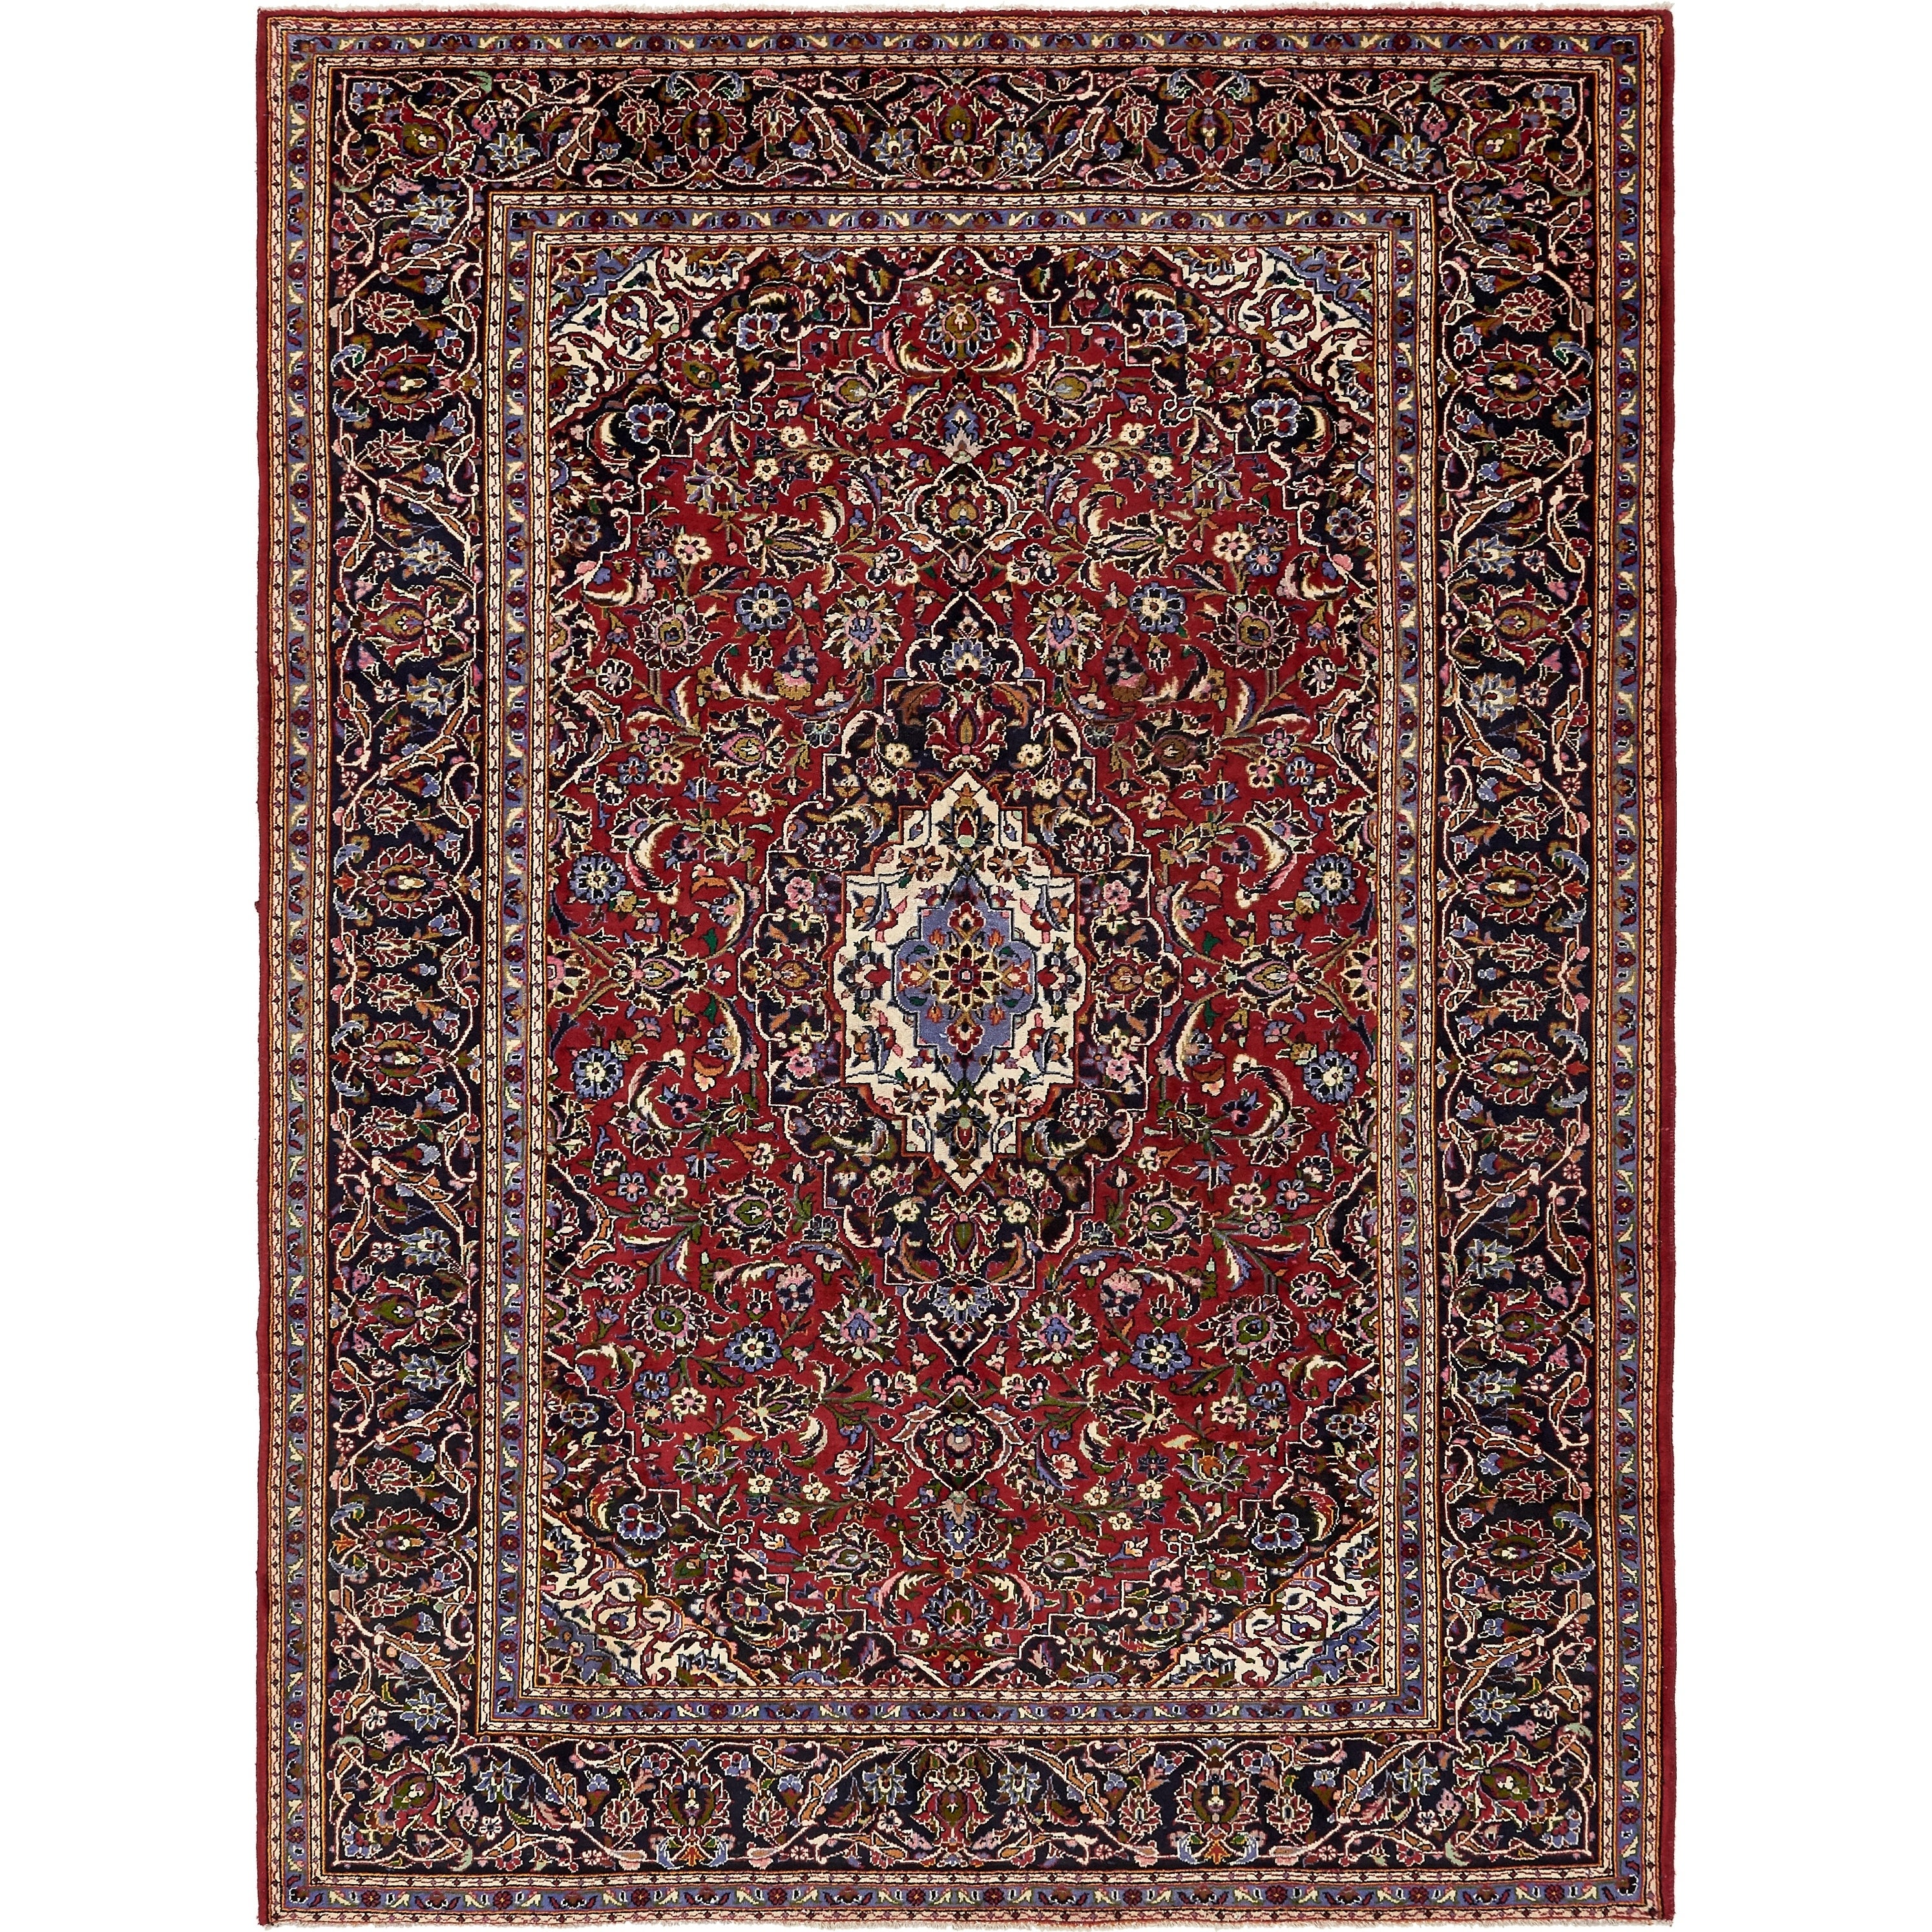 Hand Knotted Kashan Semi Antique Wool Area Rug - 8 3 x 11 2 (Red - 8 3 x 11 2)